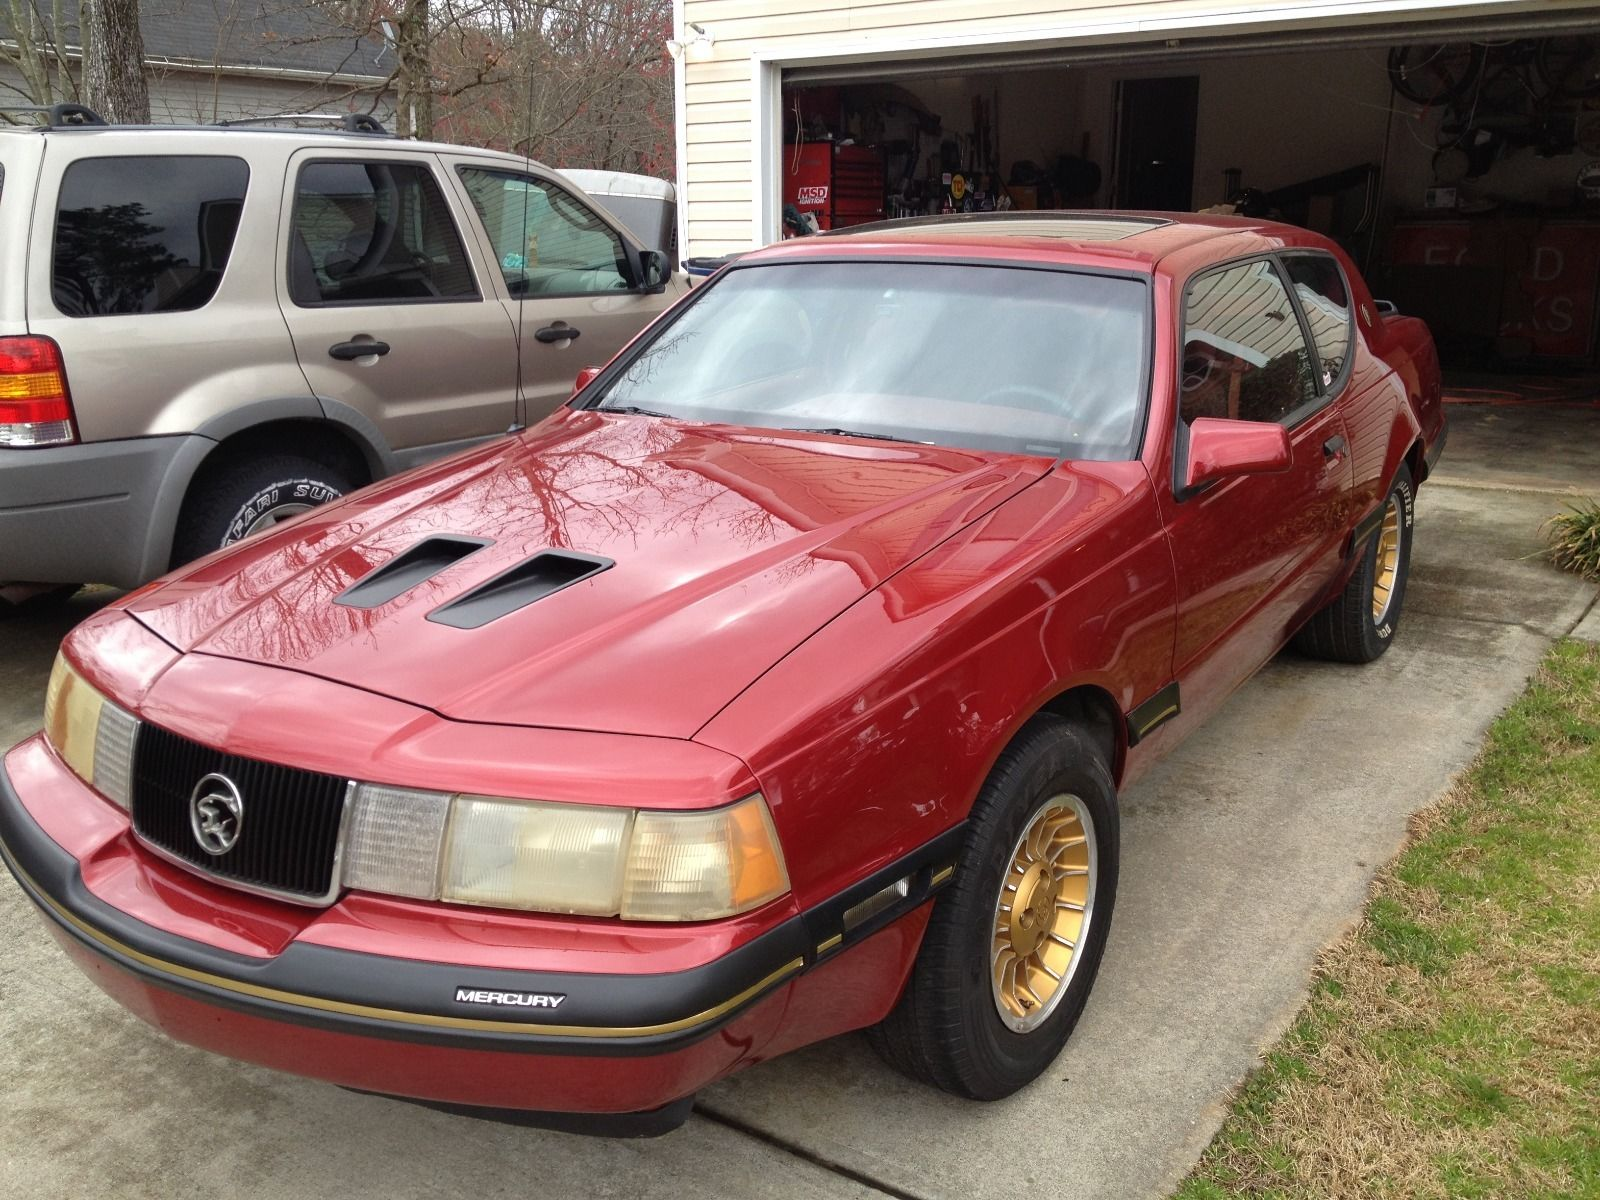 Bench Racing: How Would You Prepare This 5-speed 1987 Mercury Cougar?